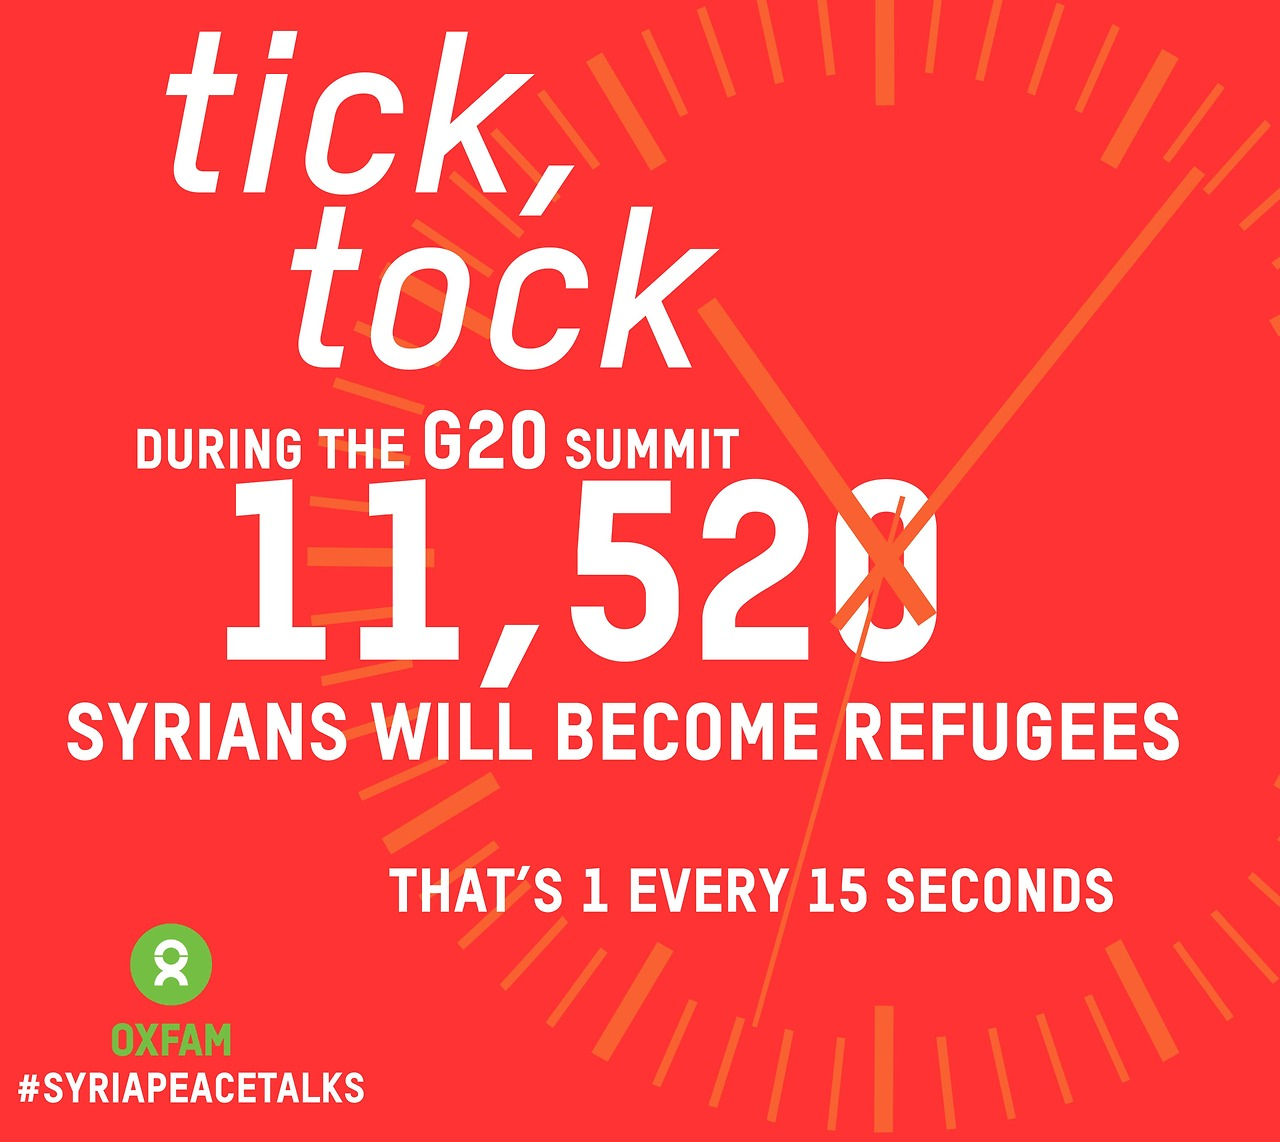 oxfamgb :       Everyone's talking about  #Syria  at the  #G20 . But while they're talking, another Syrian becomes a refugee every fifteen seconds. That's more than 11,000 new refugees during the G20 alone.   If you're outraged by this, please reblog and add your voice to our petition demanding peace talks now - TOGETHER we can make a difference.     http://www.oxfam.org.uk/    get-involved/campaign-with-us/  find-an-action/  syria-global-petition-to-obama-  and-putin